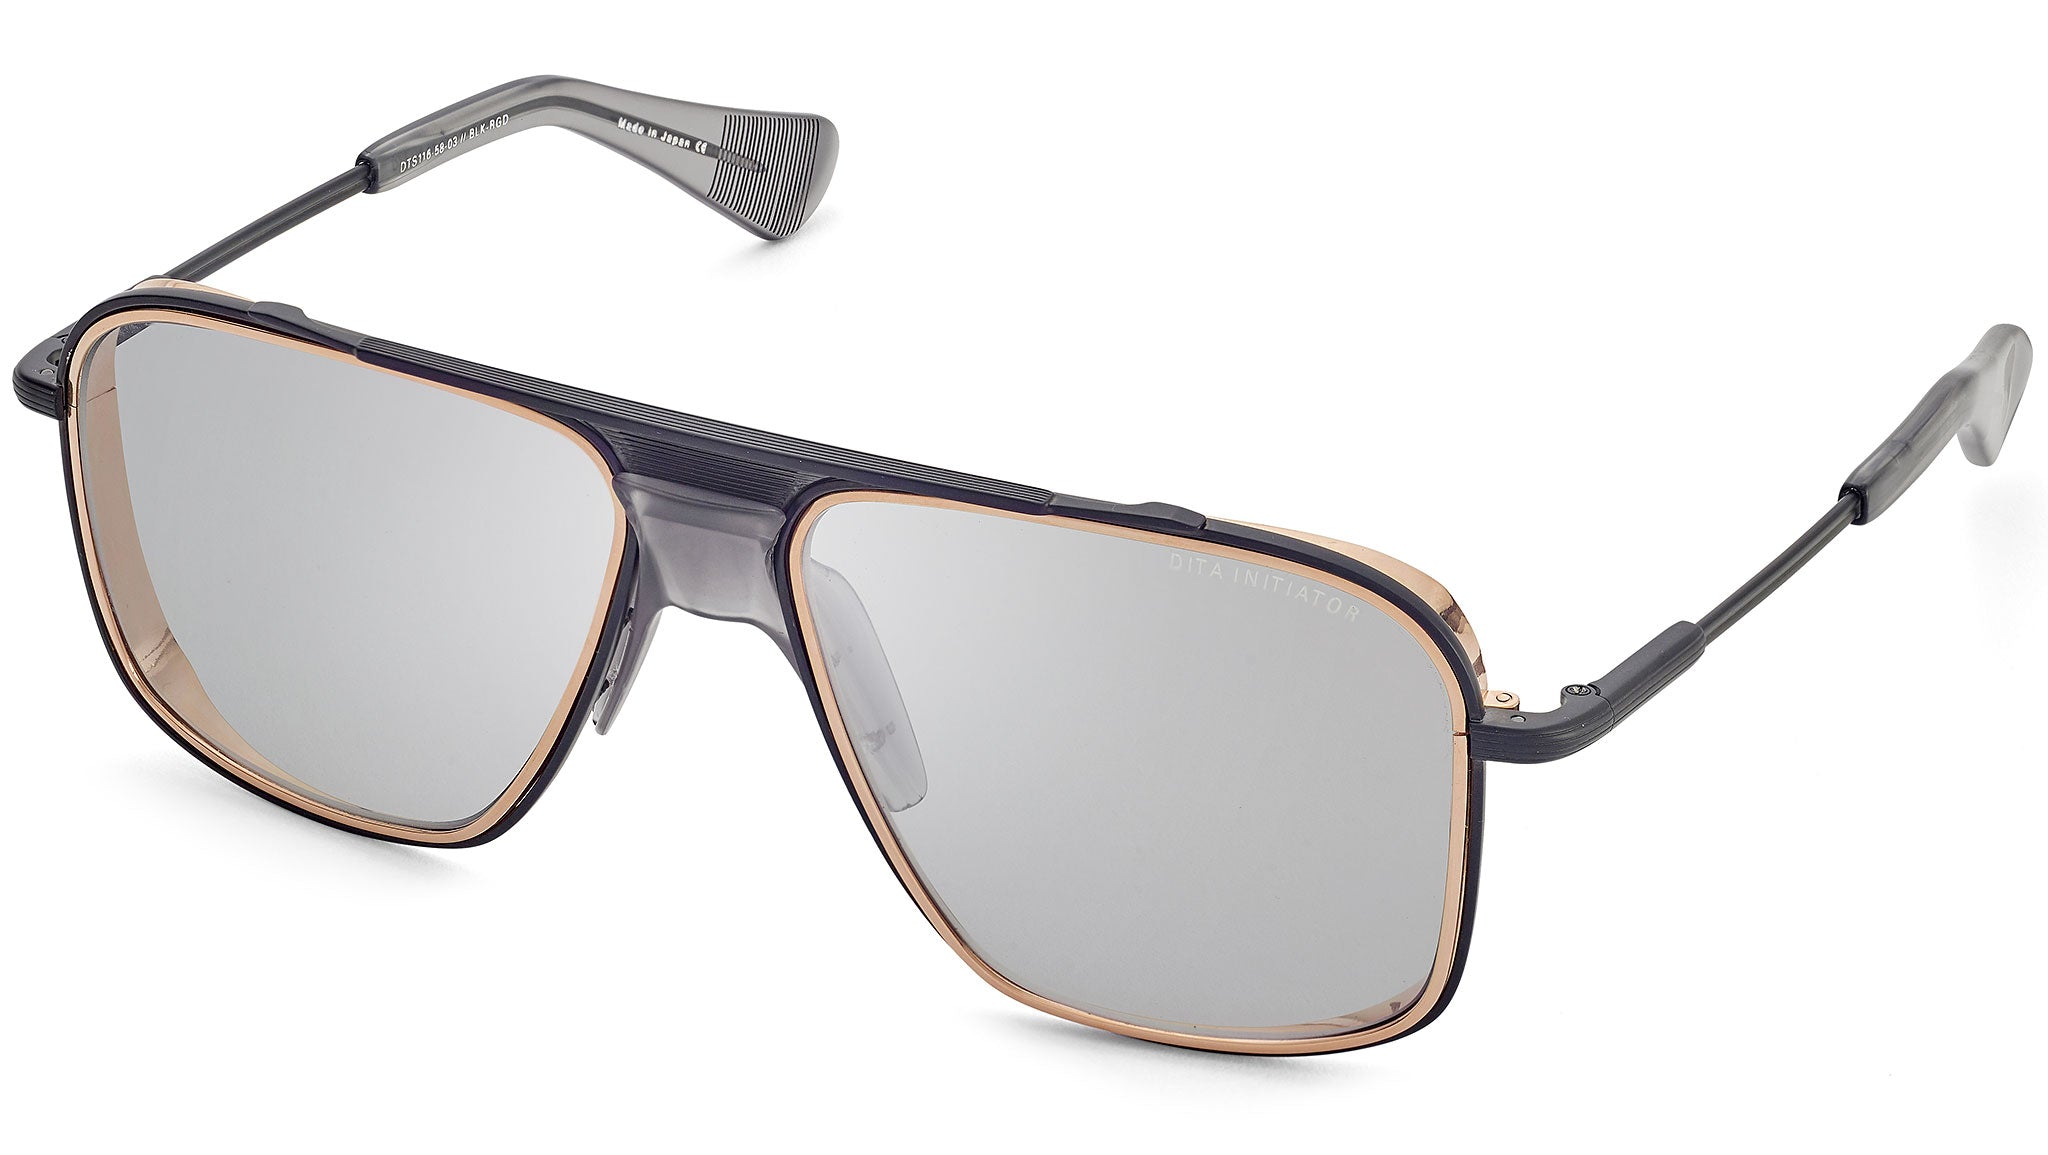 Initiator DTS 116 03 black iron and rose gold